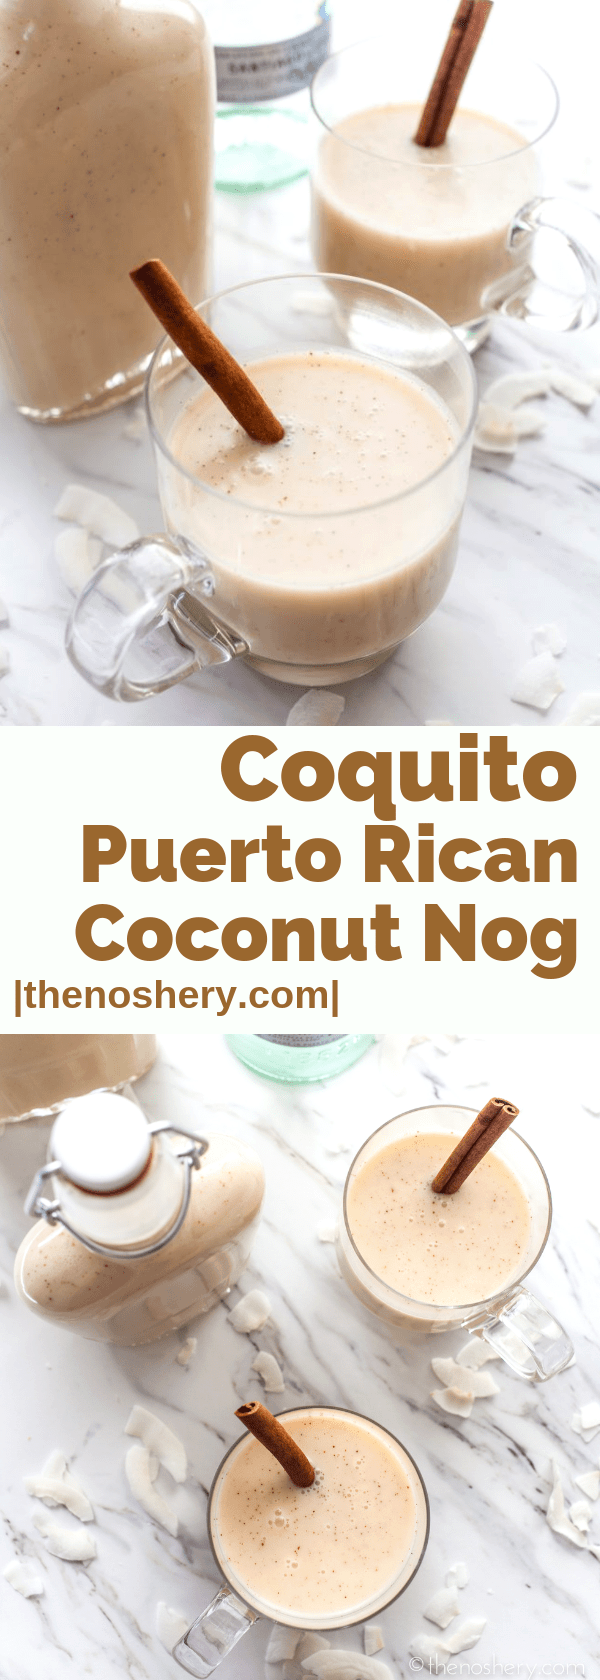 Coquito: Puerto Rican Coconut Nog | Coquito is a creamy coconut rum drink that is essential to any Puerto Rican Christmas celebration. It's best enjoyed super cold. | The Noshery